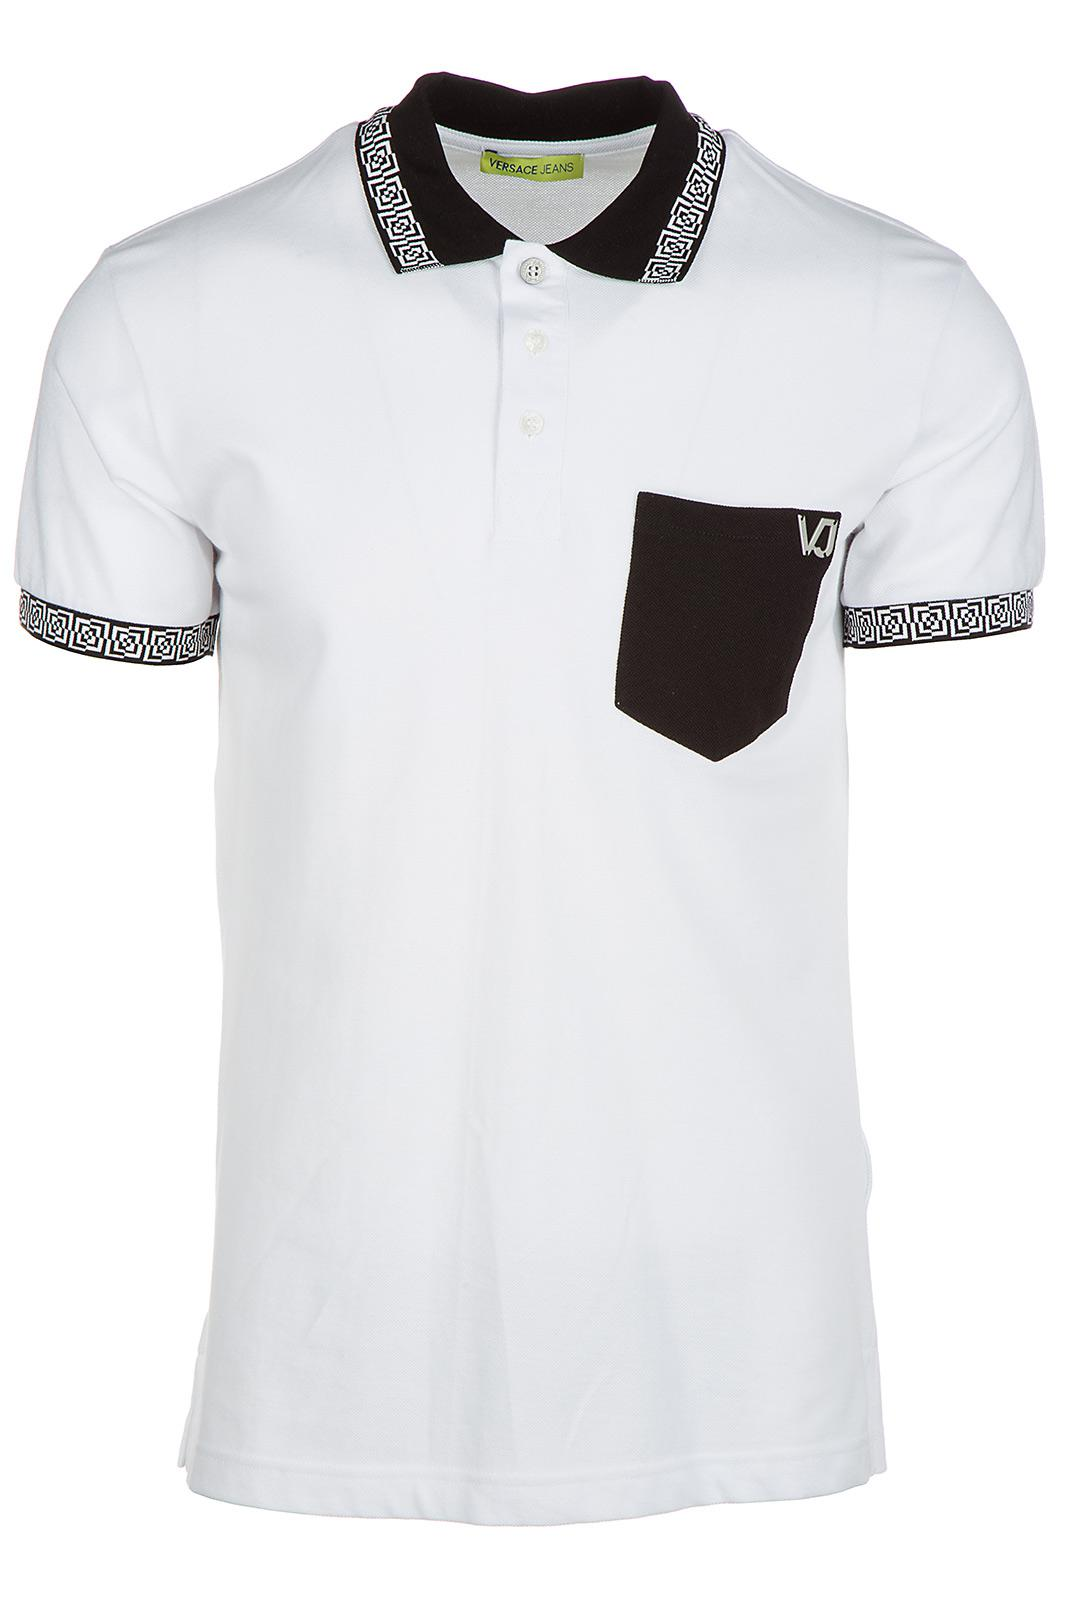 868ab503 Versace Jeans Short Sleeve T-shirt Polo Collar in White for Men - Lyst